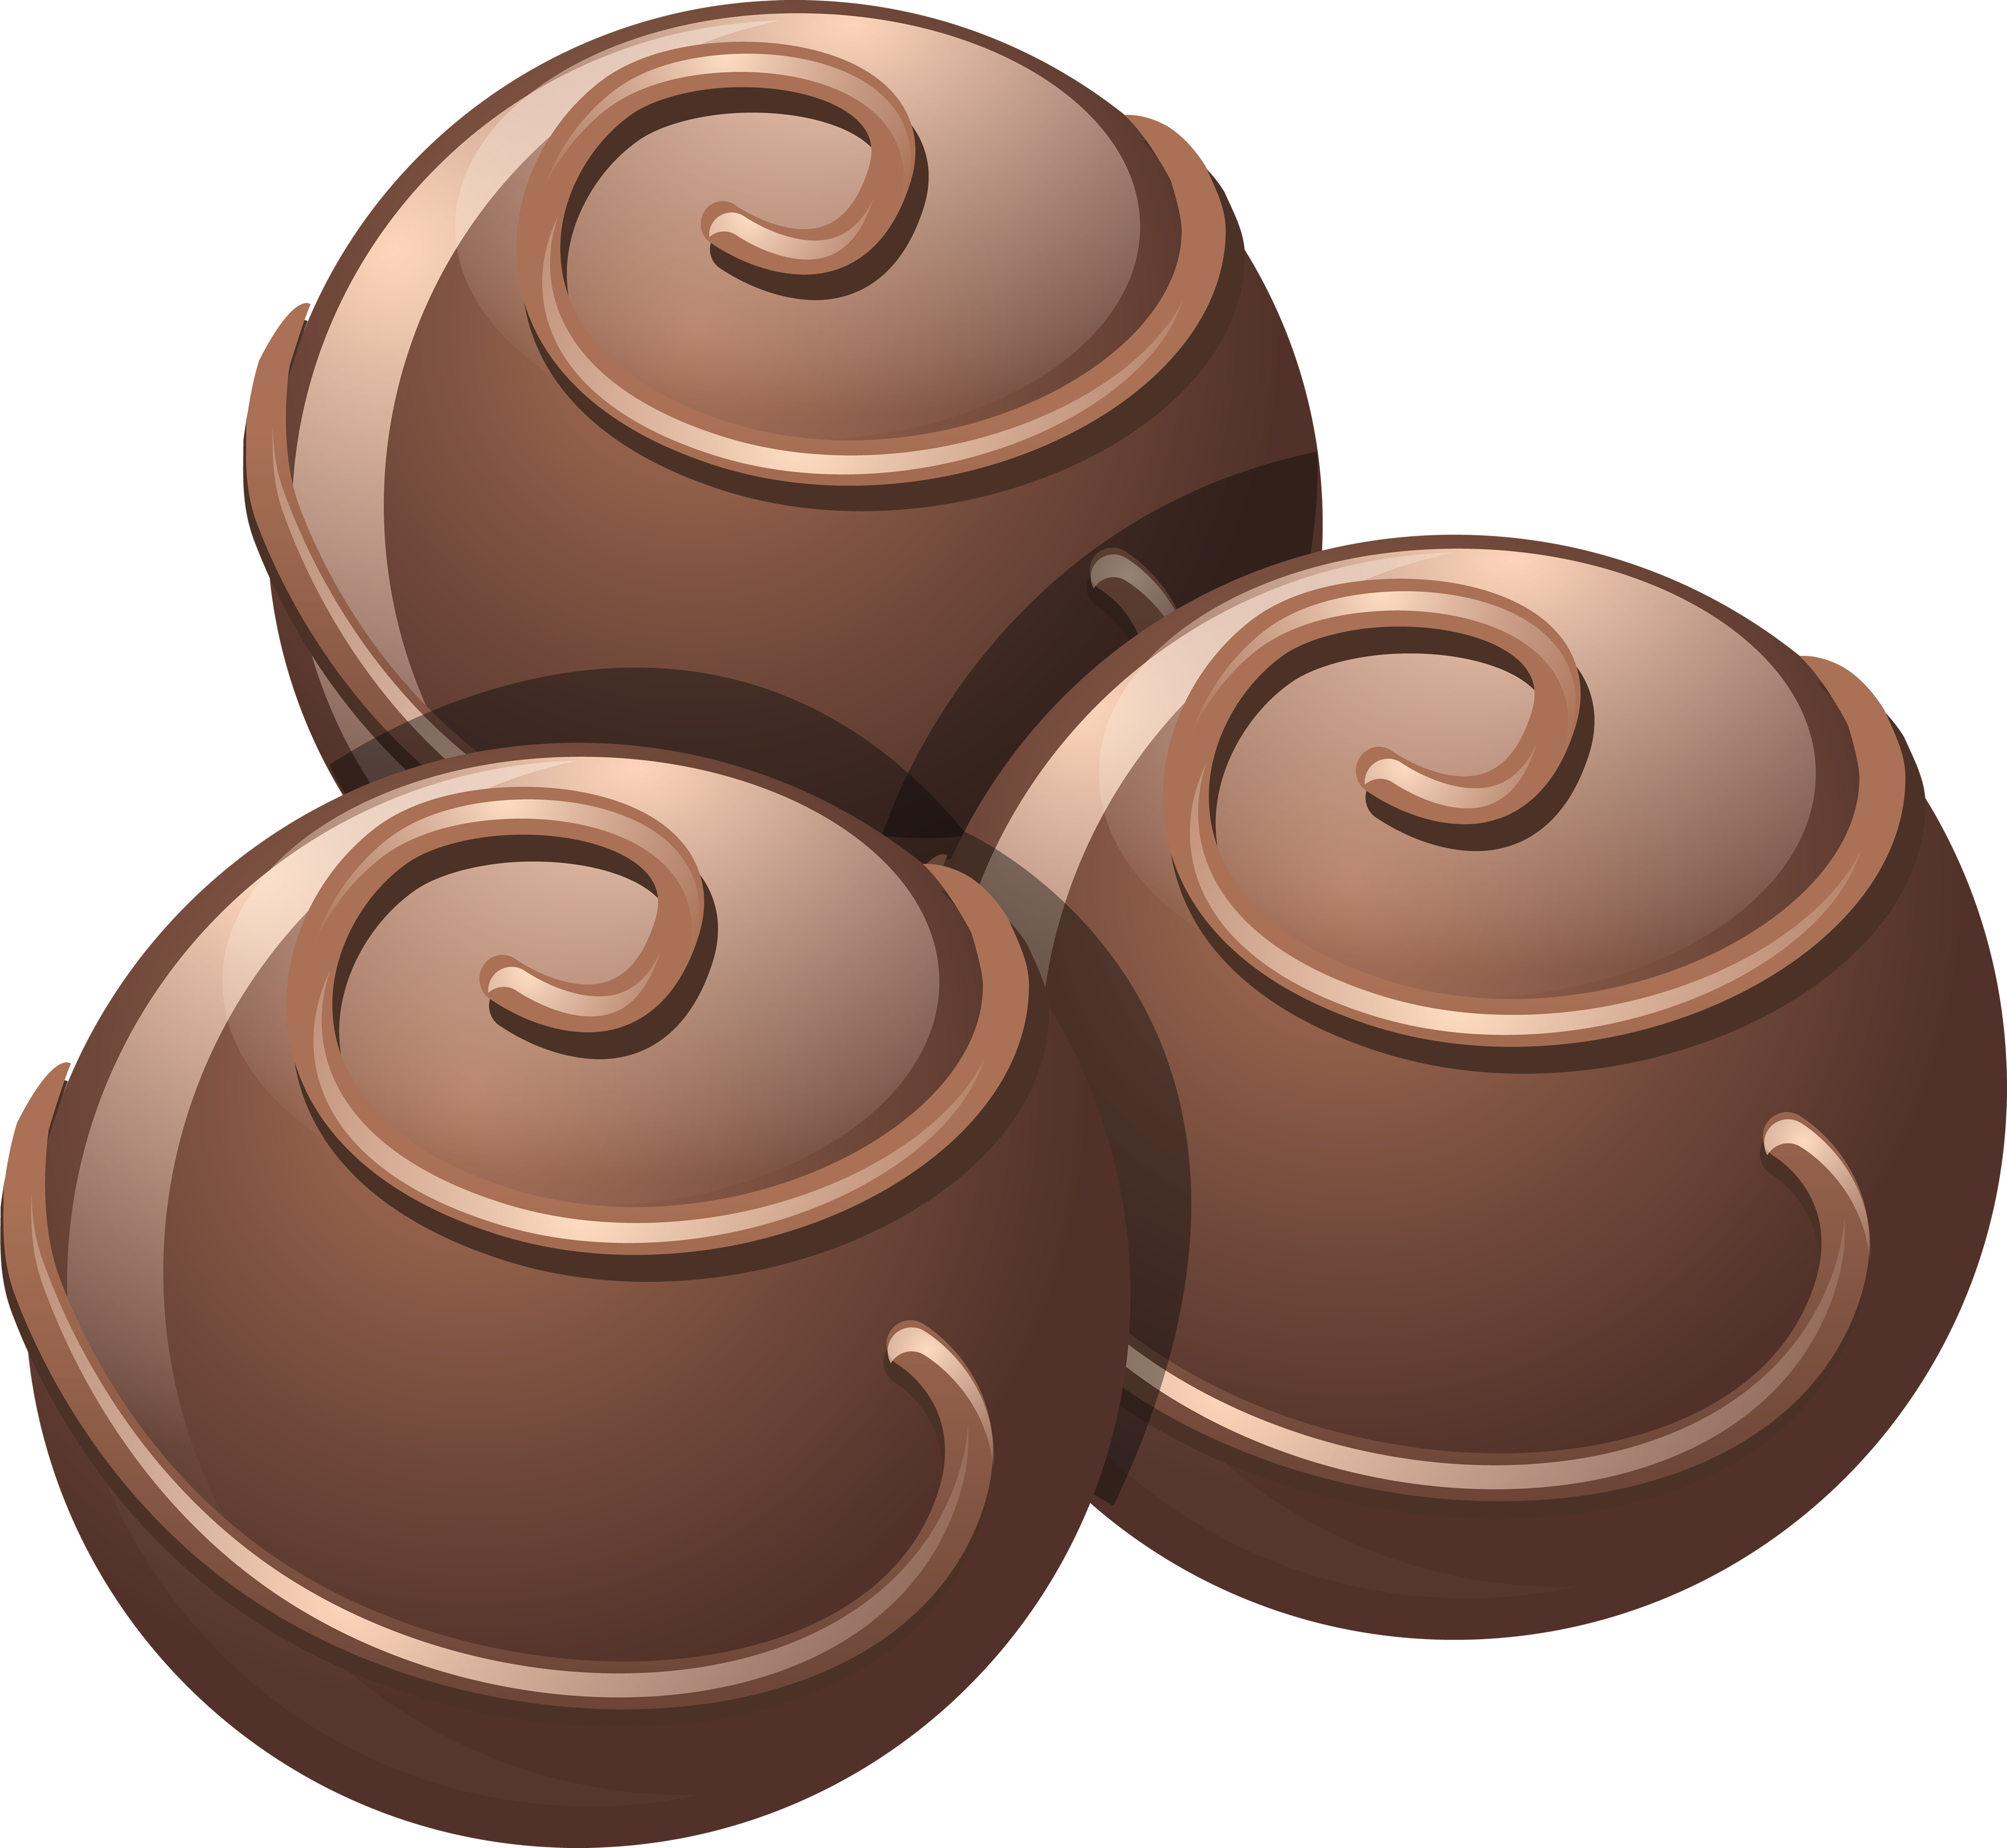 Download and use Chocolate Icon